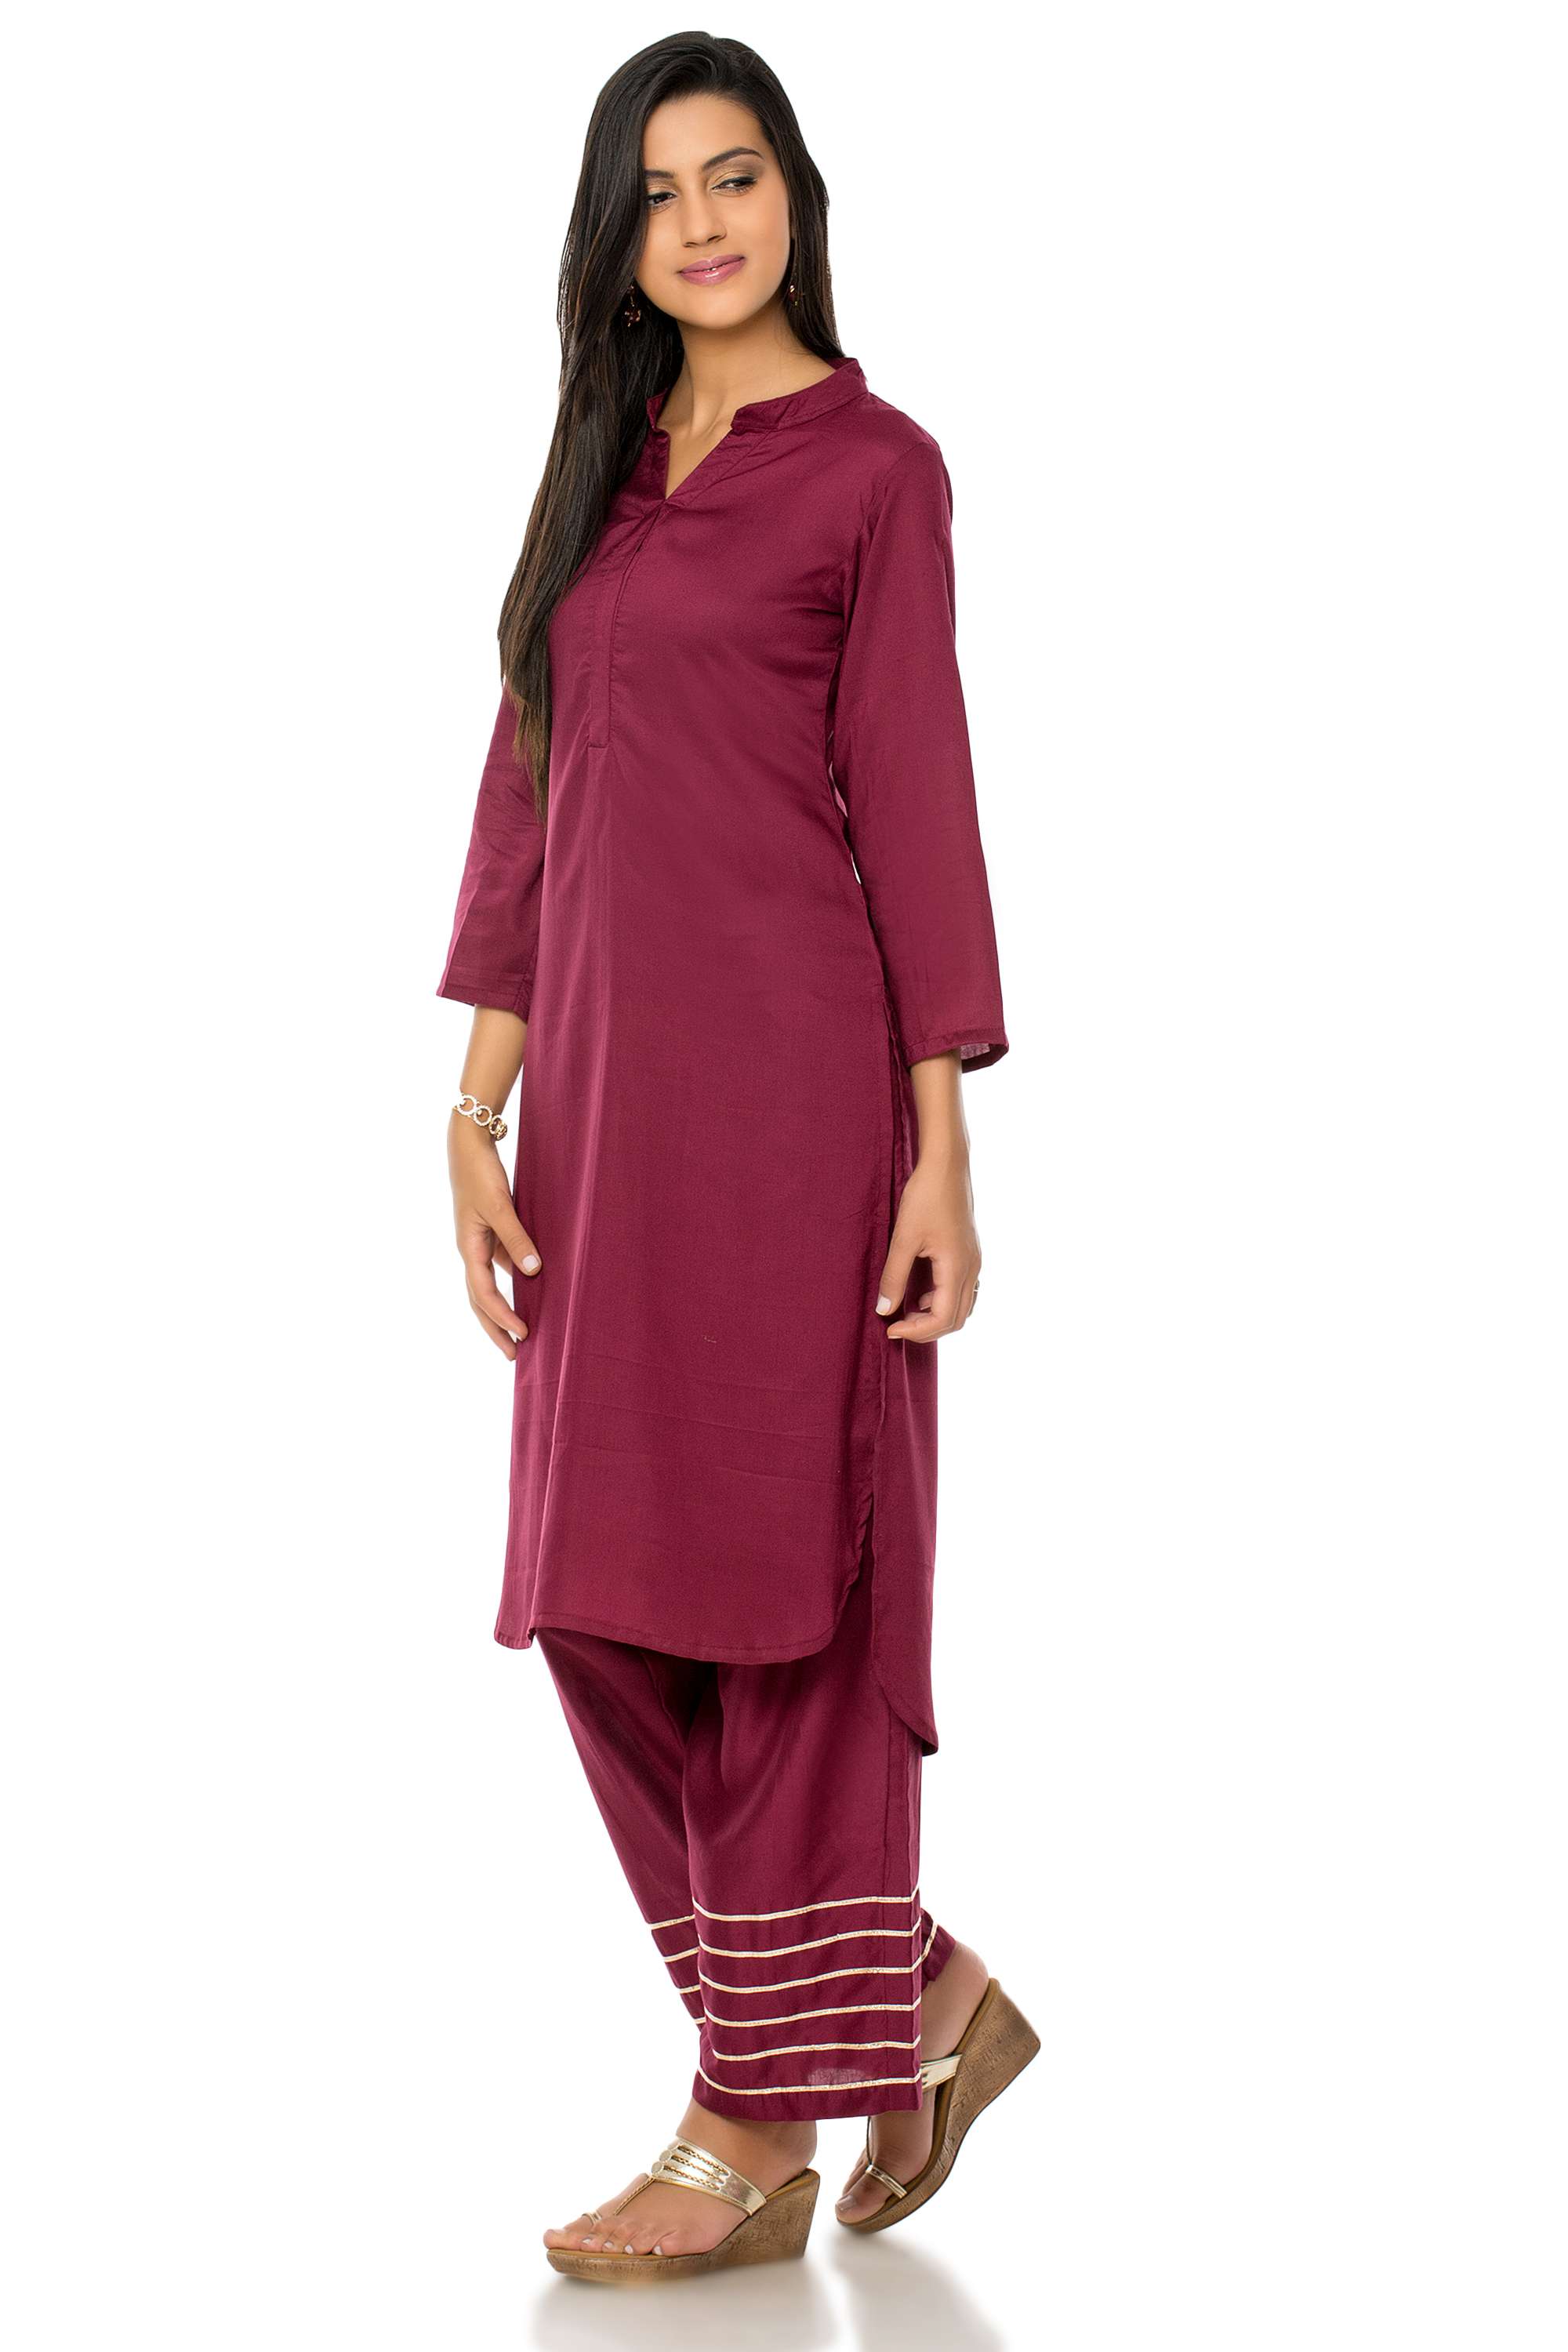 Maroon cotton kurta and palazzo set (INDI-304)